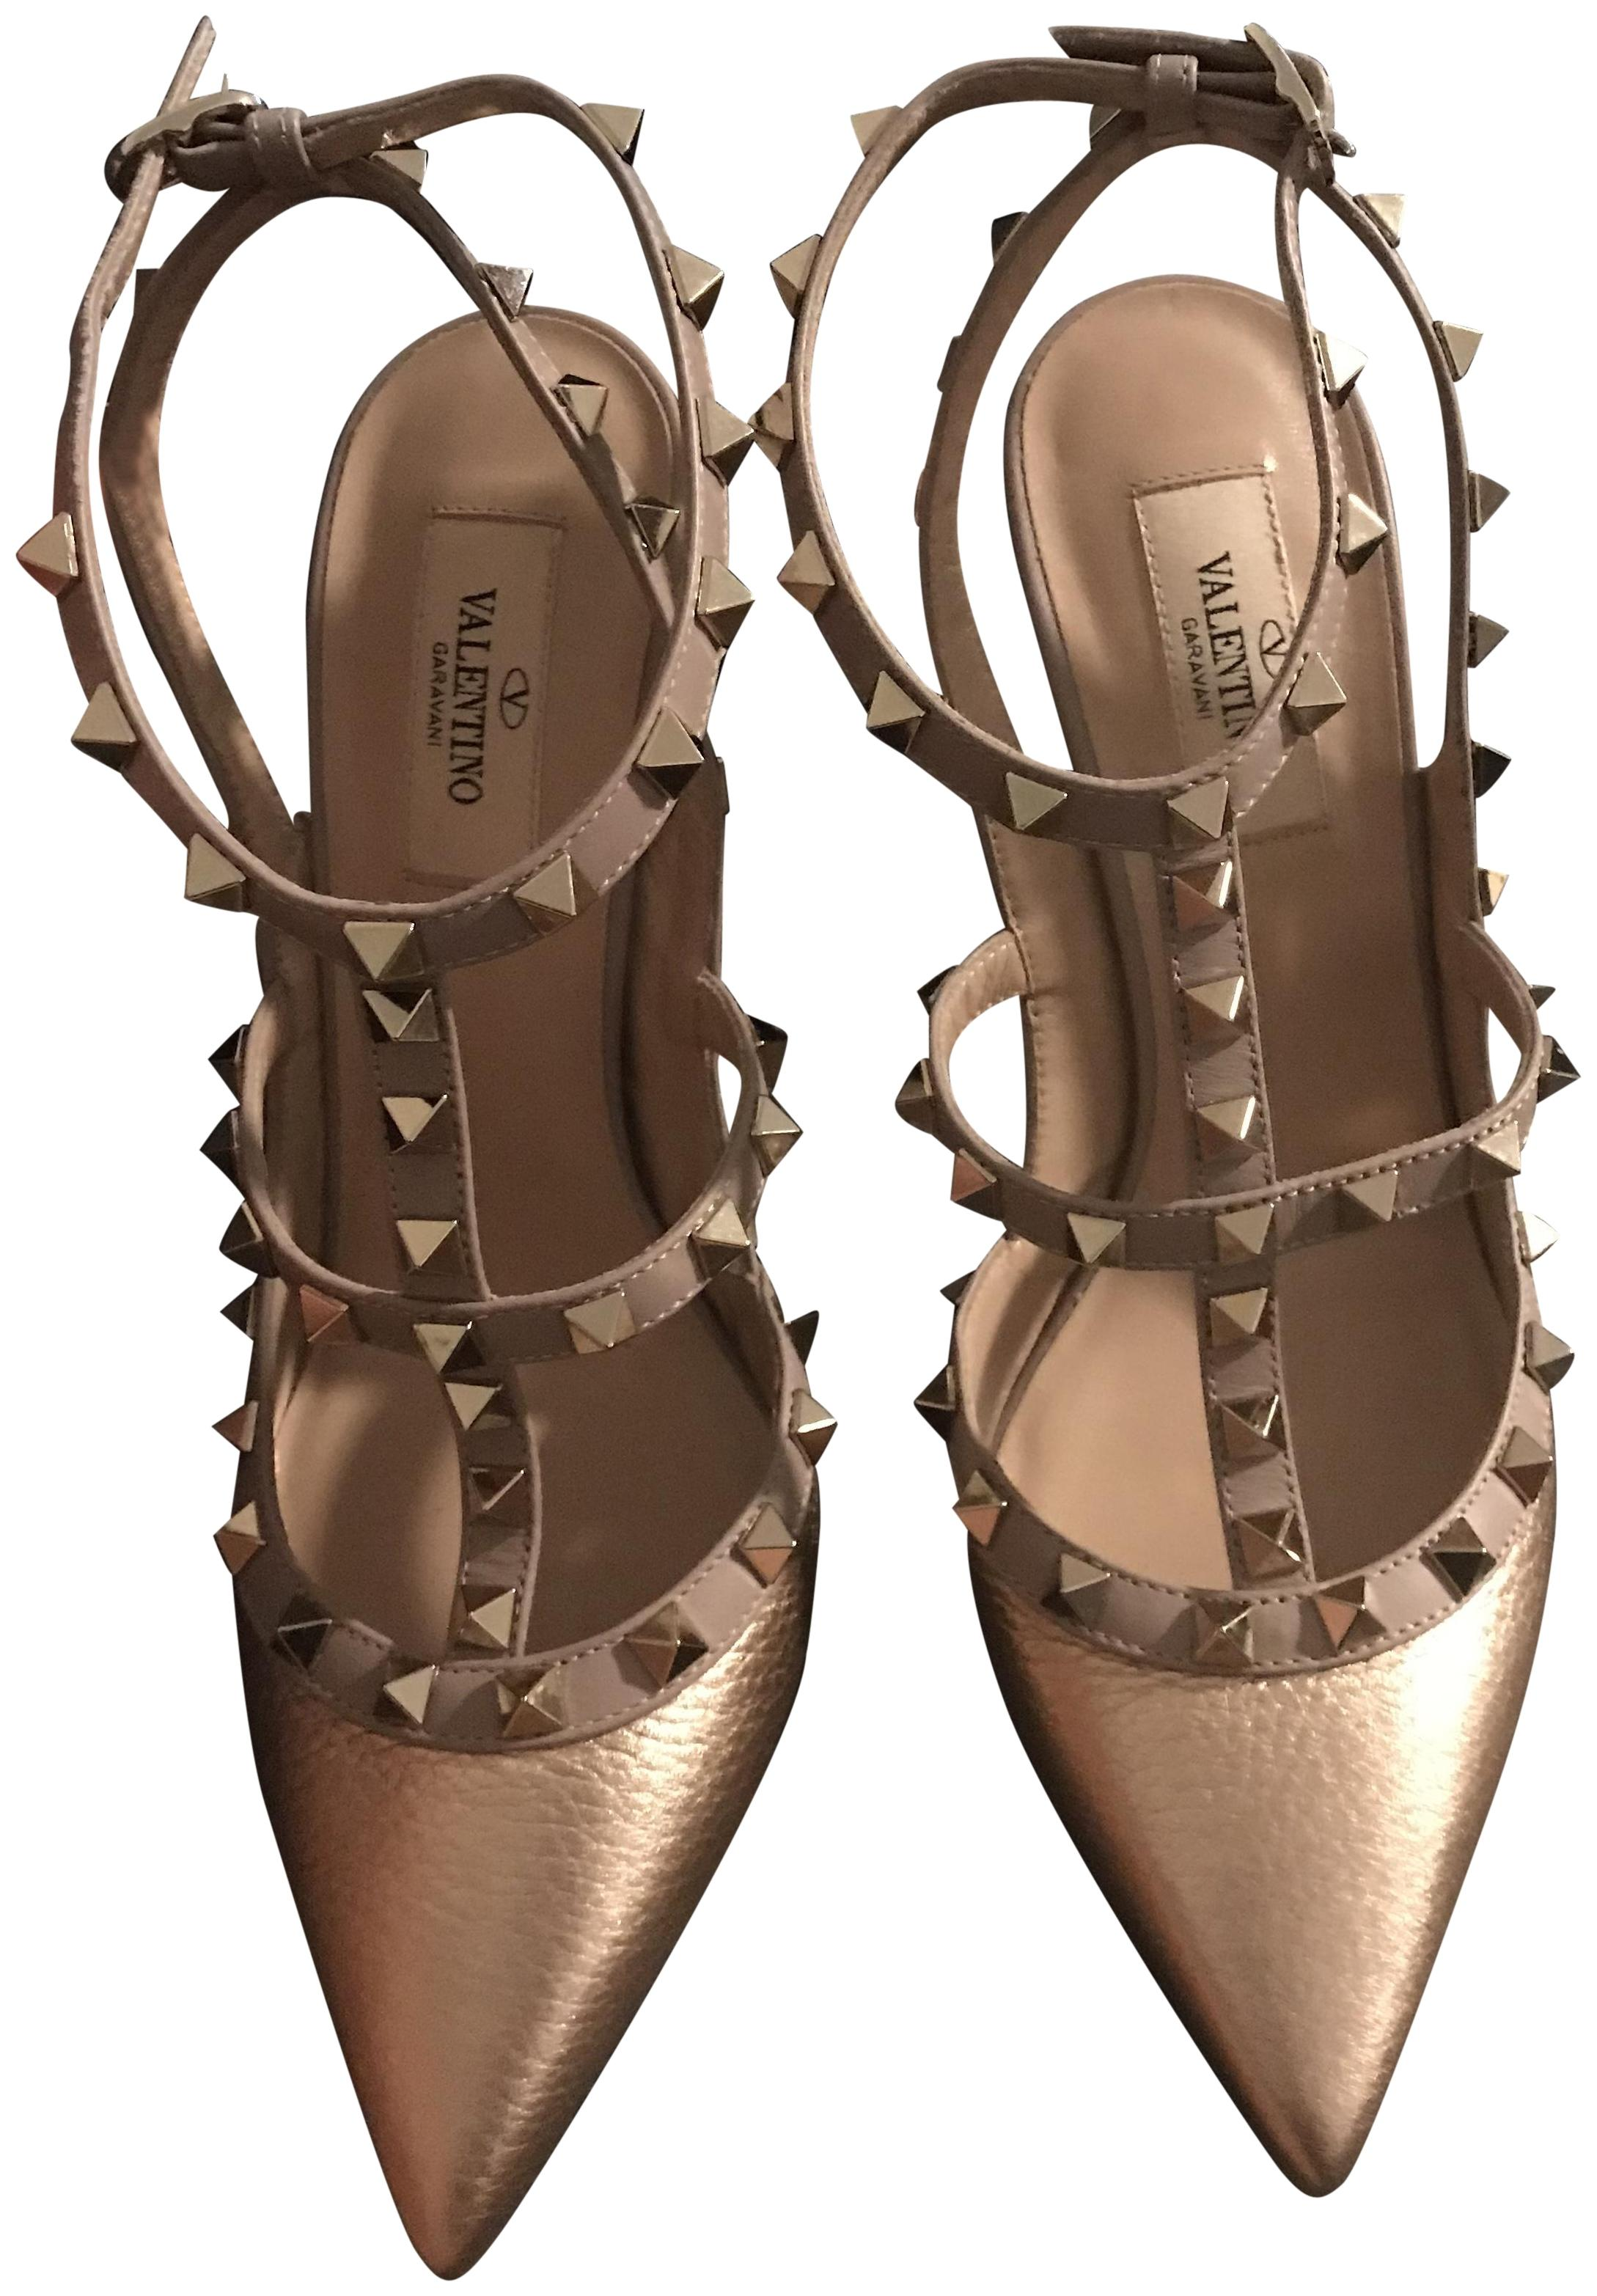 Valentino Rockstud T-strap Grained Metallic Gold Pumps Size EU 39 (Approx. US 9) Regular (M, B)